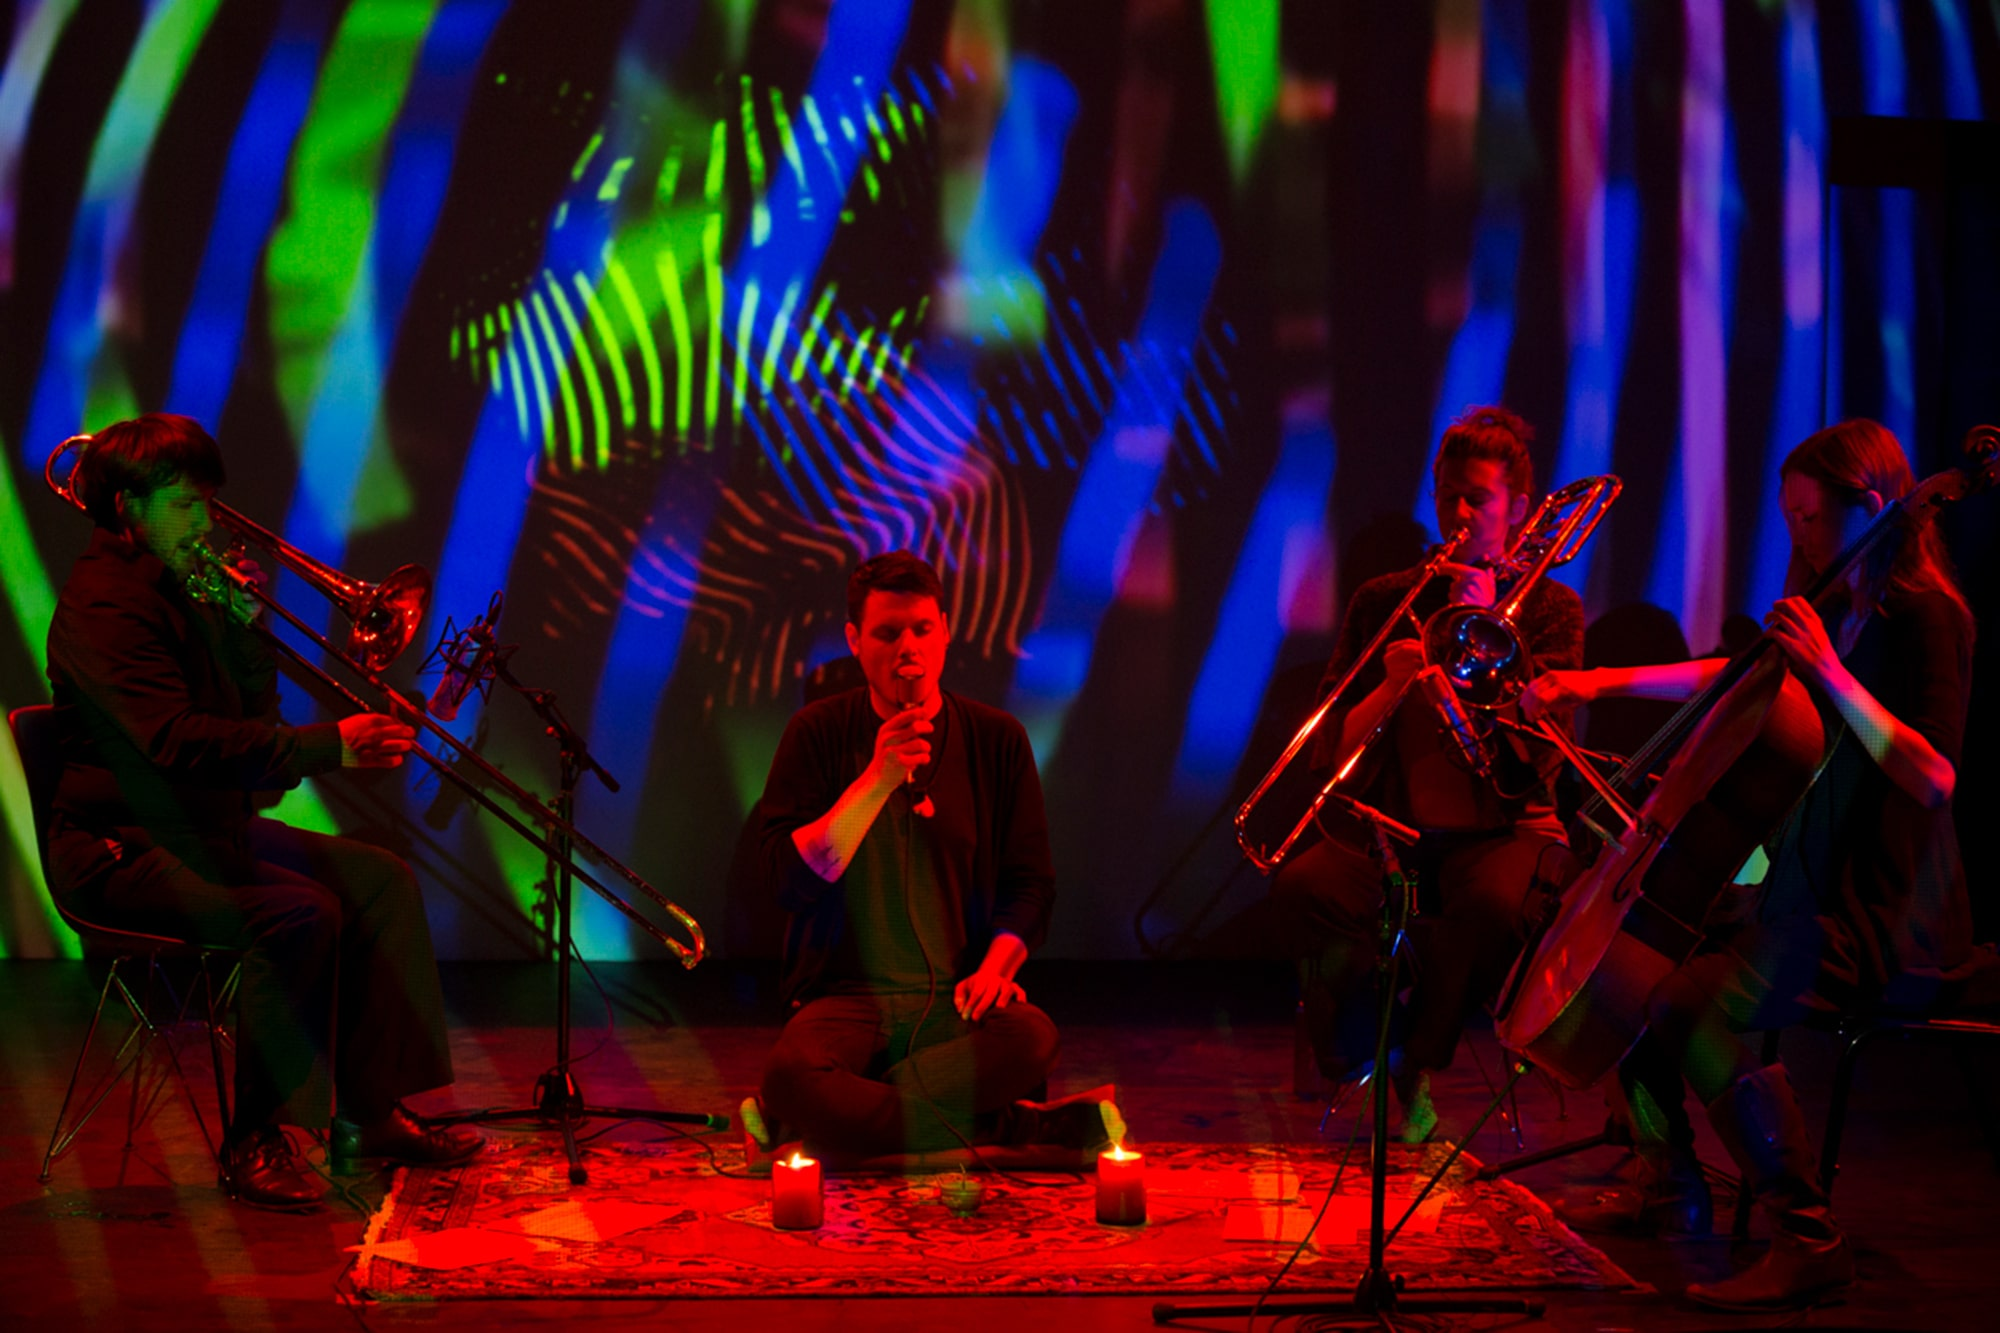 Randy Gibson and Ensemble performing Gibson's <em>Apparitions of The Four Pillars in The Midwinter Starfield under The Astral 789 Duet</em> at the 2013 Avant Music Festival